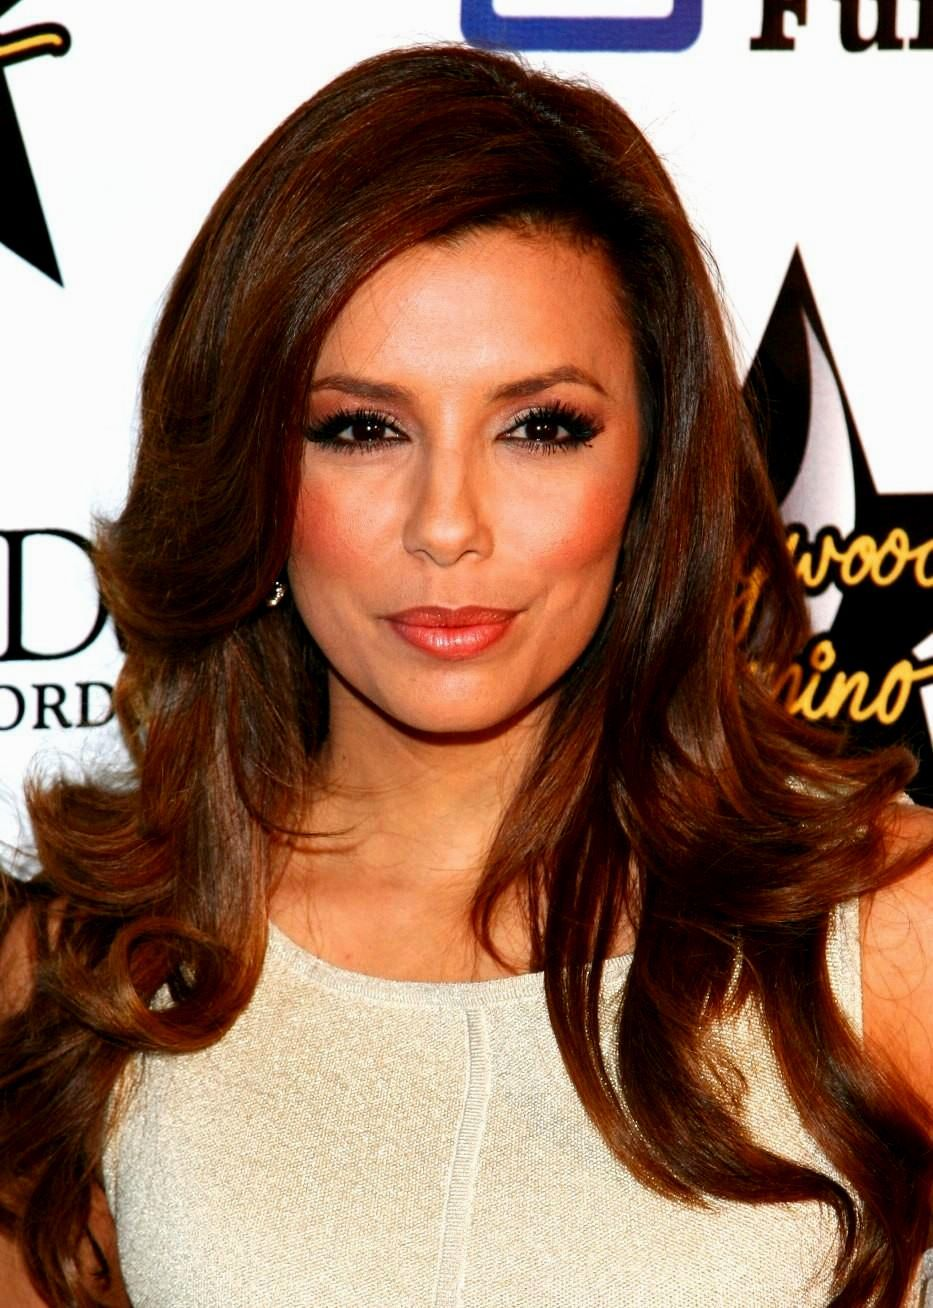 Eva Longoria Hairstyles Beauteous Long Hairstyles Eva Longoria  Hairstyles  Pinterest  Long